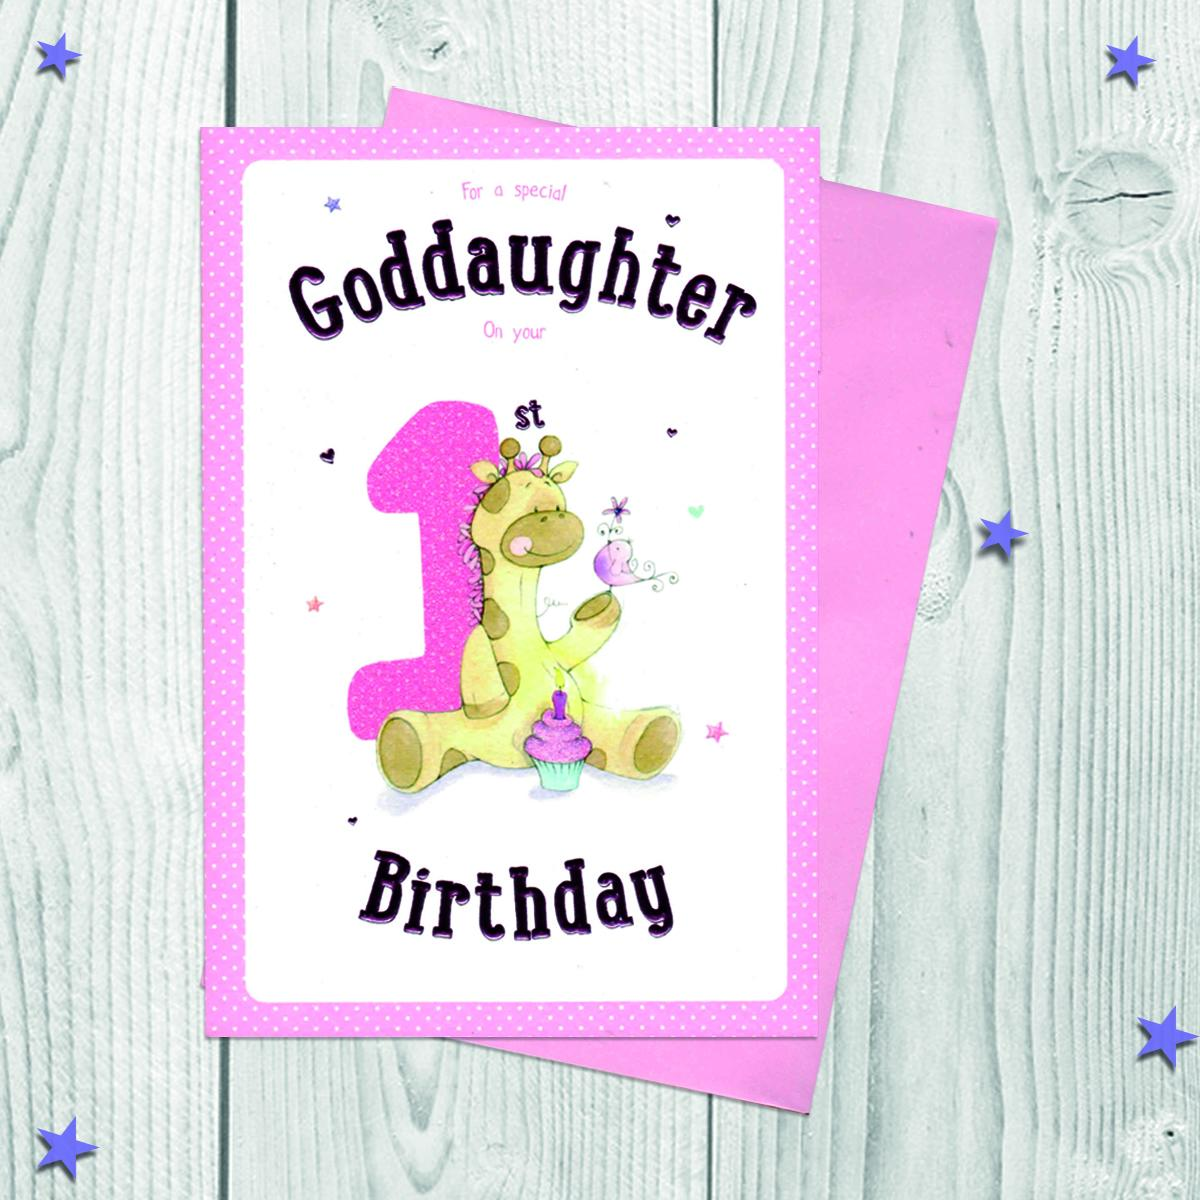 Goddaughter Age 1 Birthday Card Alongside Its Pink Envelope